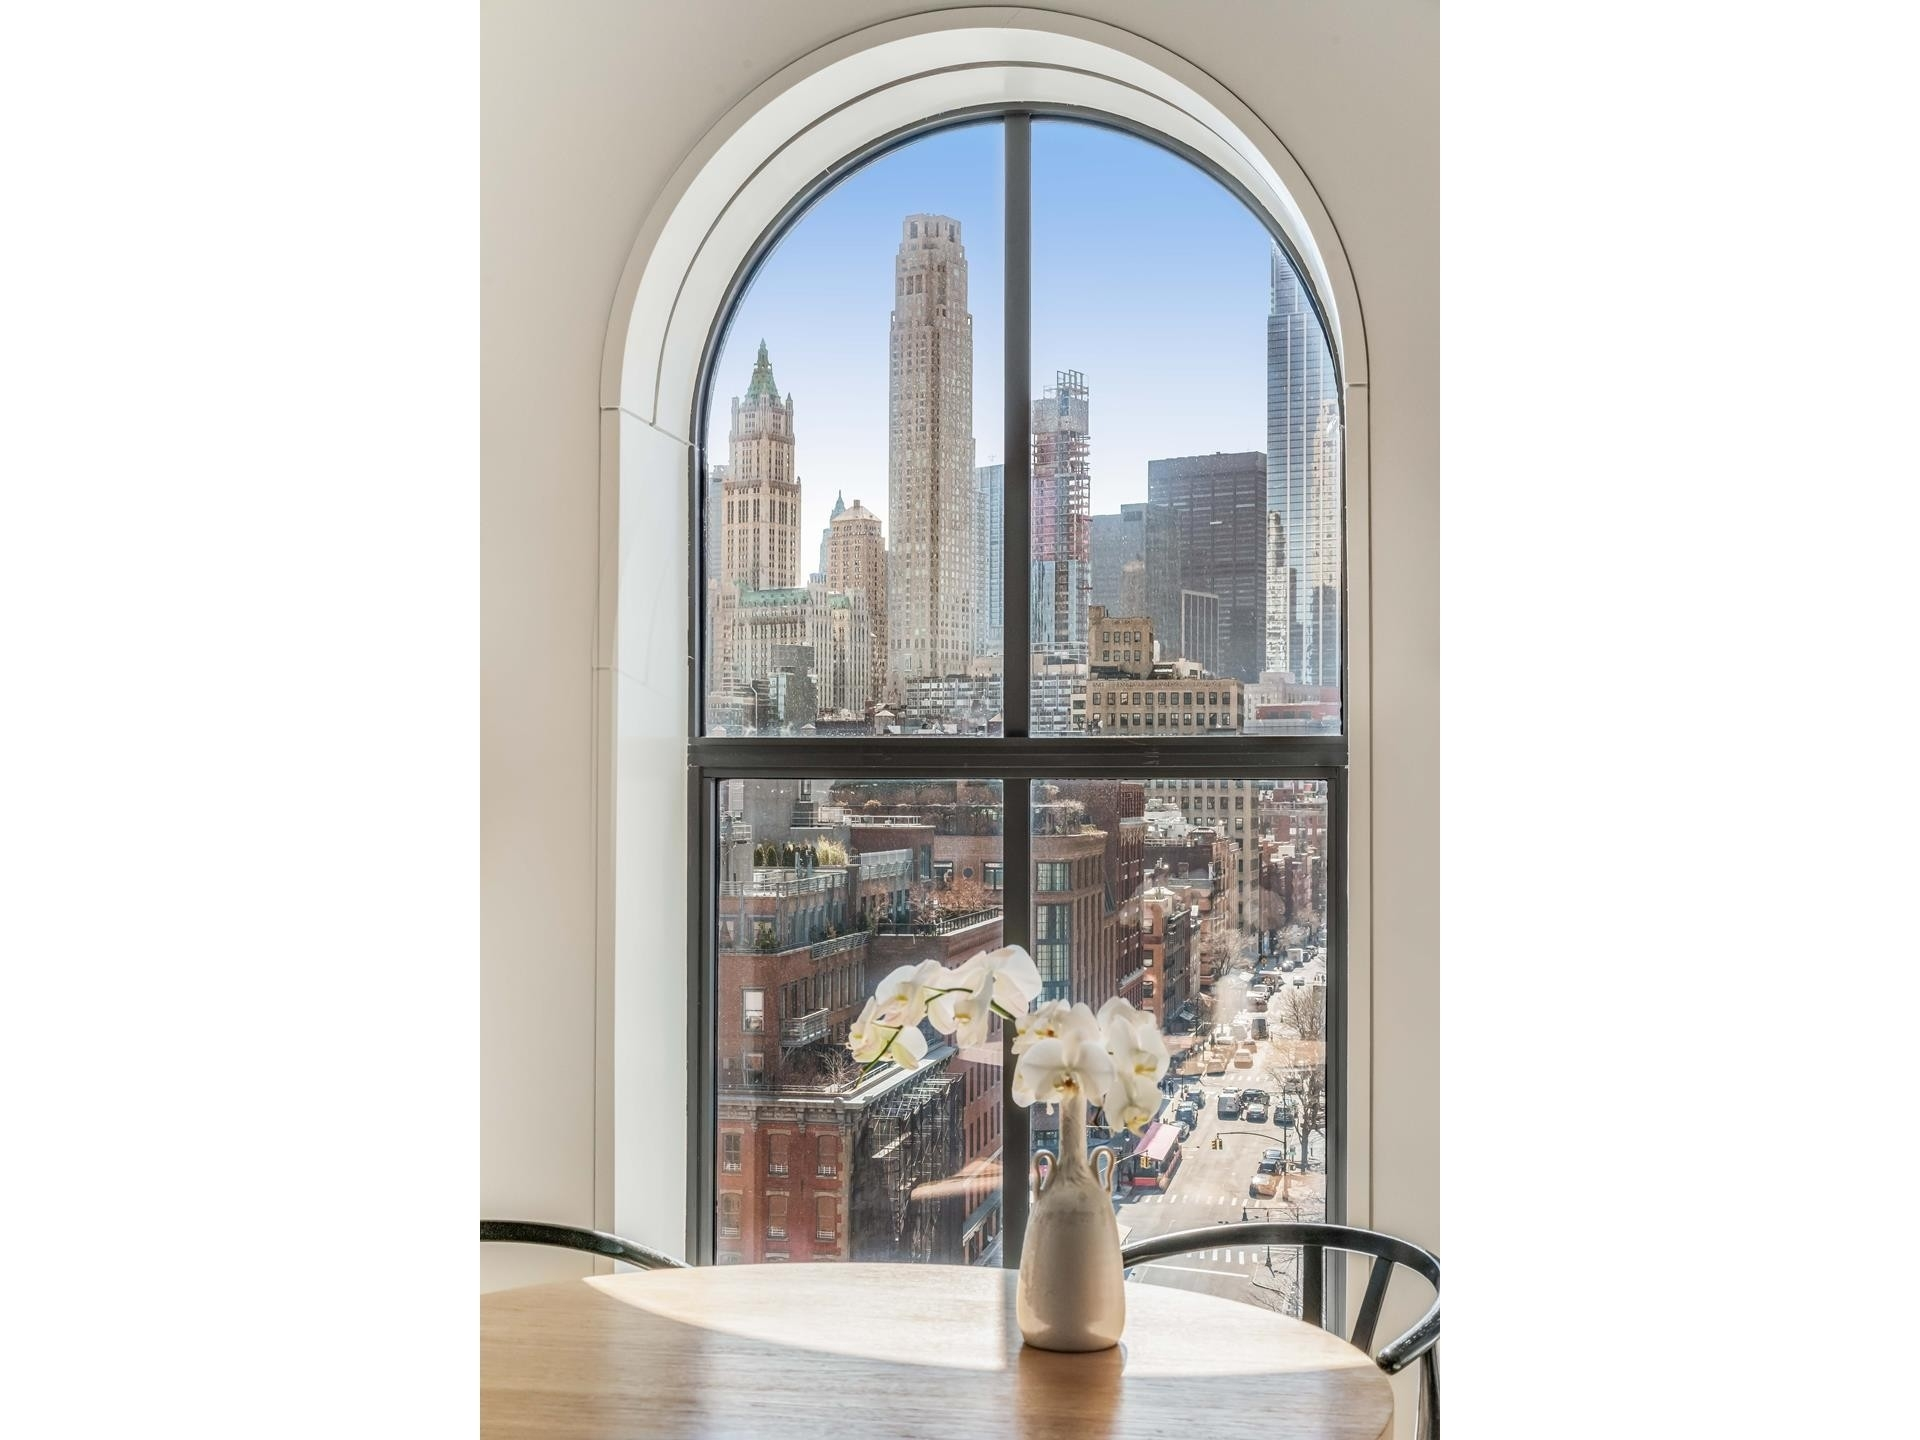 10. Condominiums for Sale at 408 GREENWICH ST , PH TriBeCa, New York, NY 10013